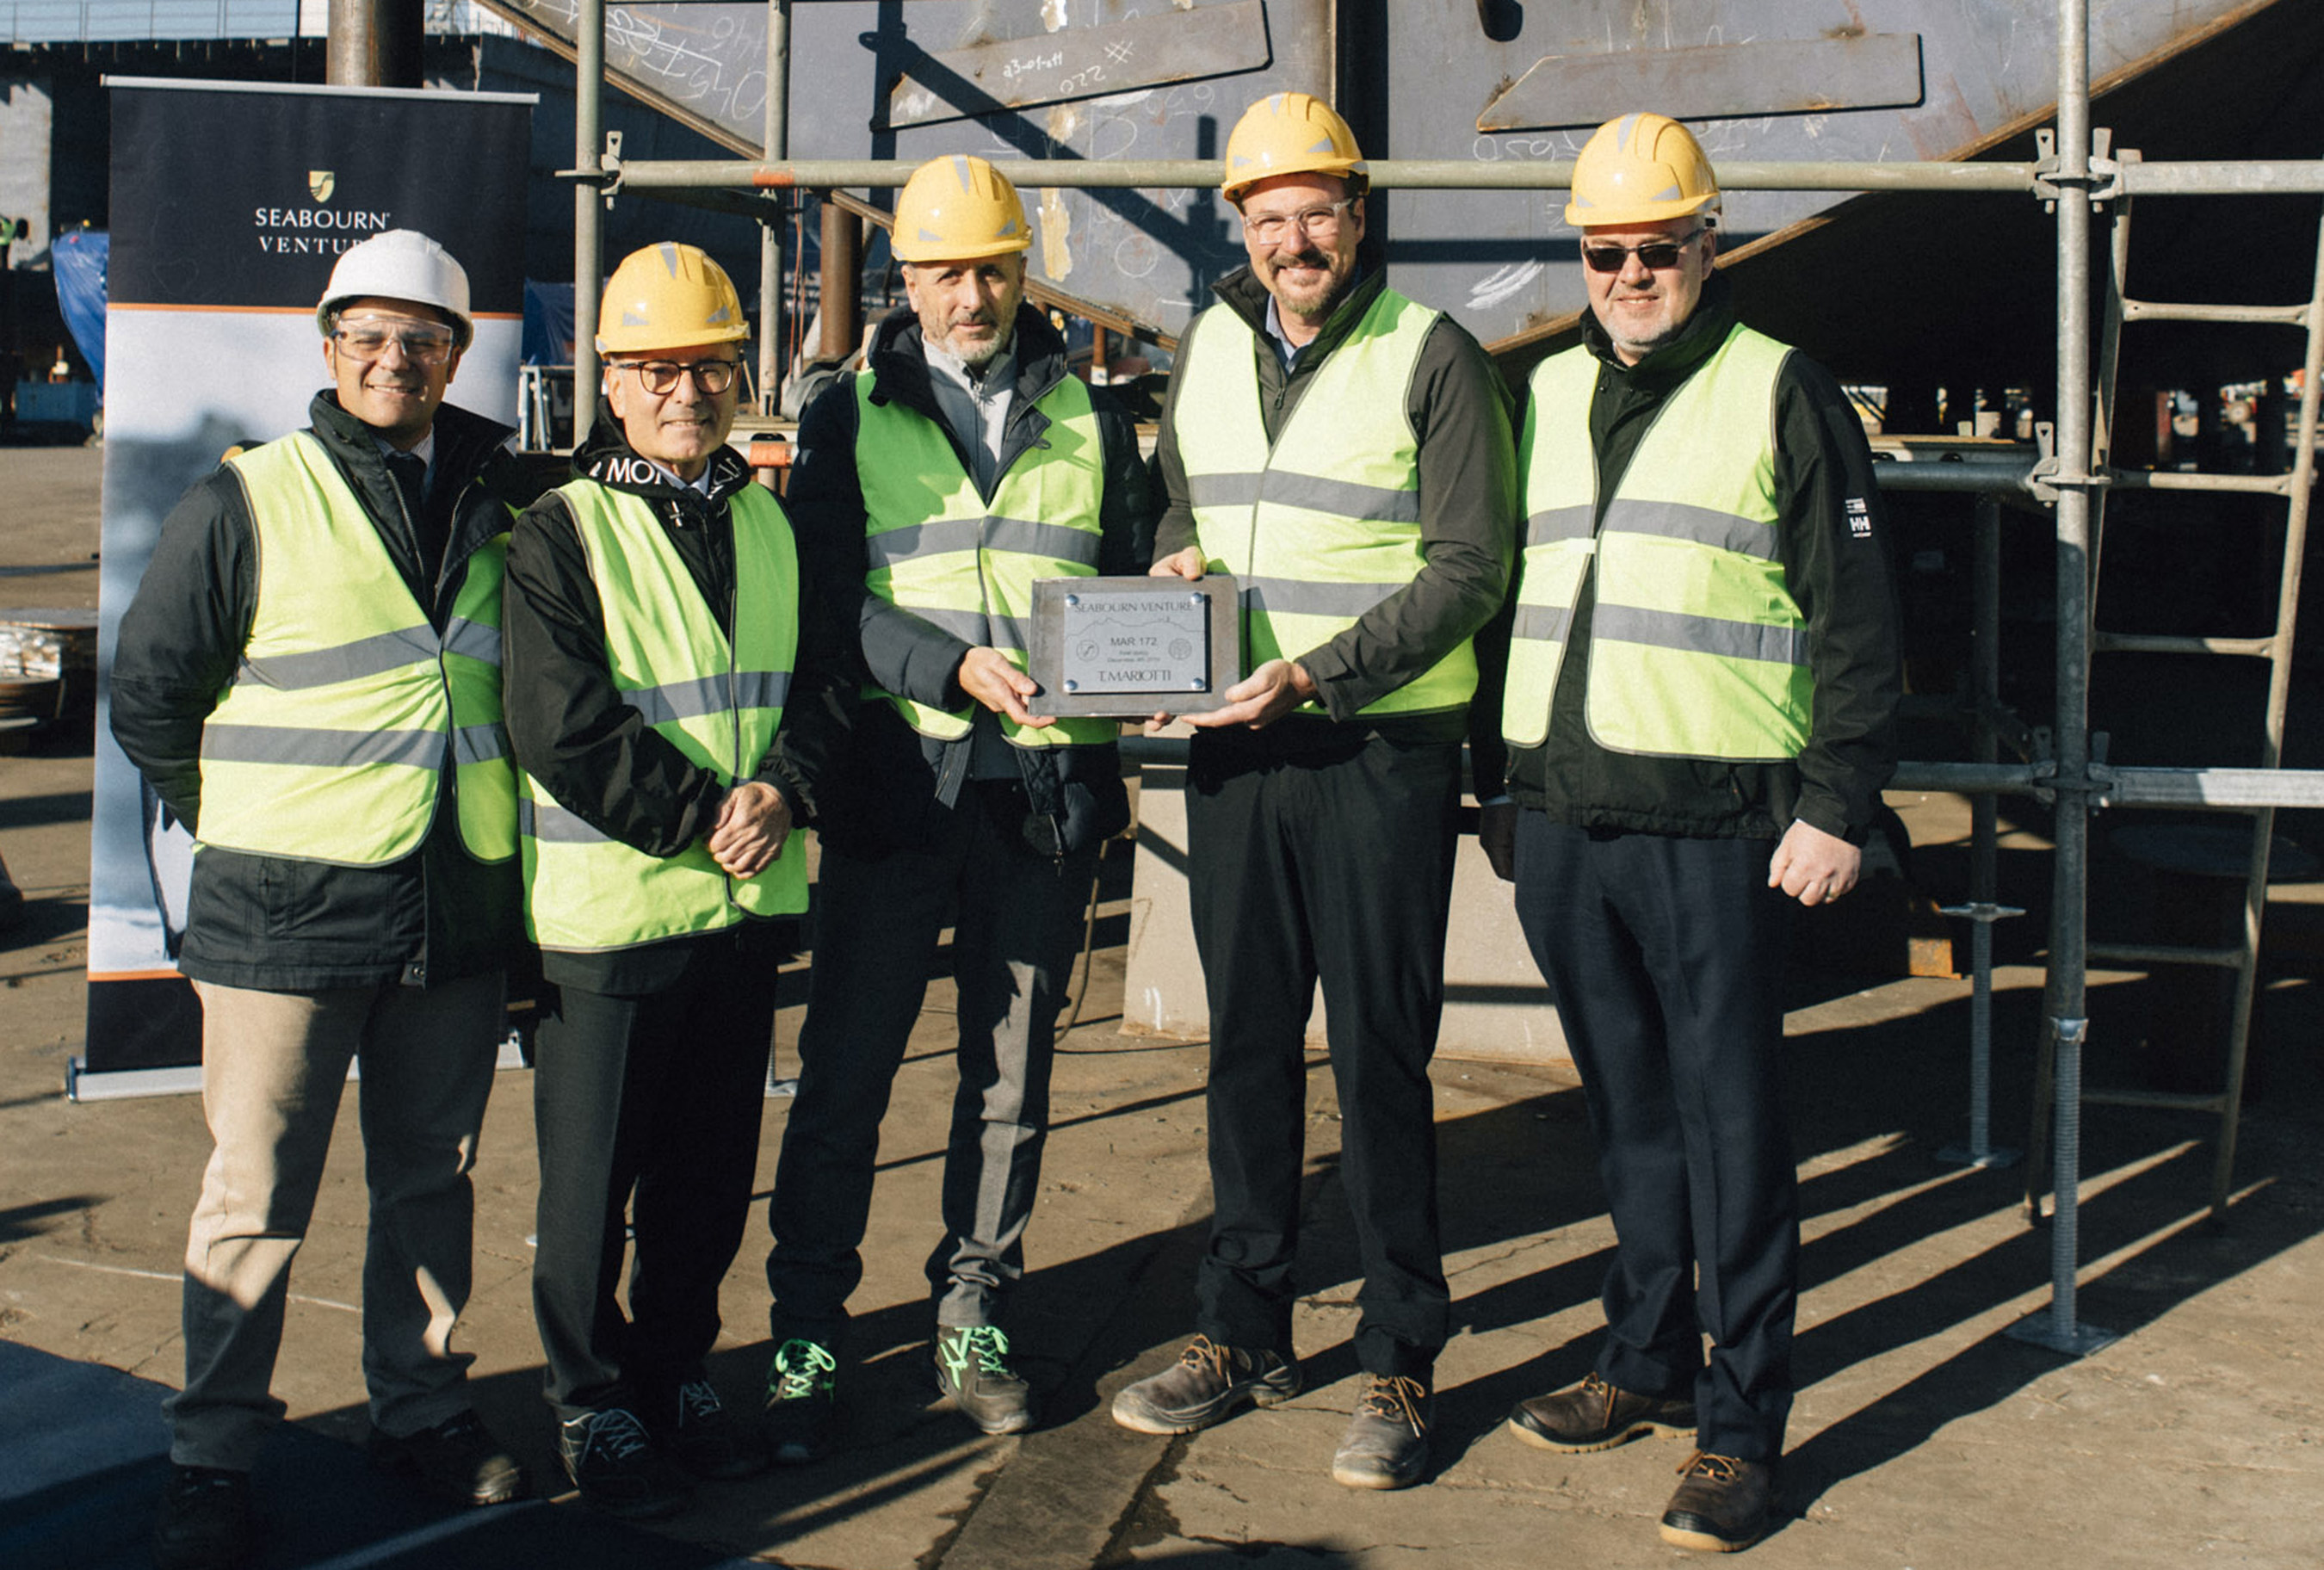 From left to right: Ruggiero Rizzo, T.Mariotti Project Manager - Seabourn Venture; Carmelo Bottecchia, Cimolai Manager; Marco Ghiglione, T.Mariotti Managing Director; Richard Meadows, Seabourn President; Jan Velthuis, Holland America Group - Newbuild Project Manager